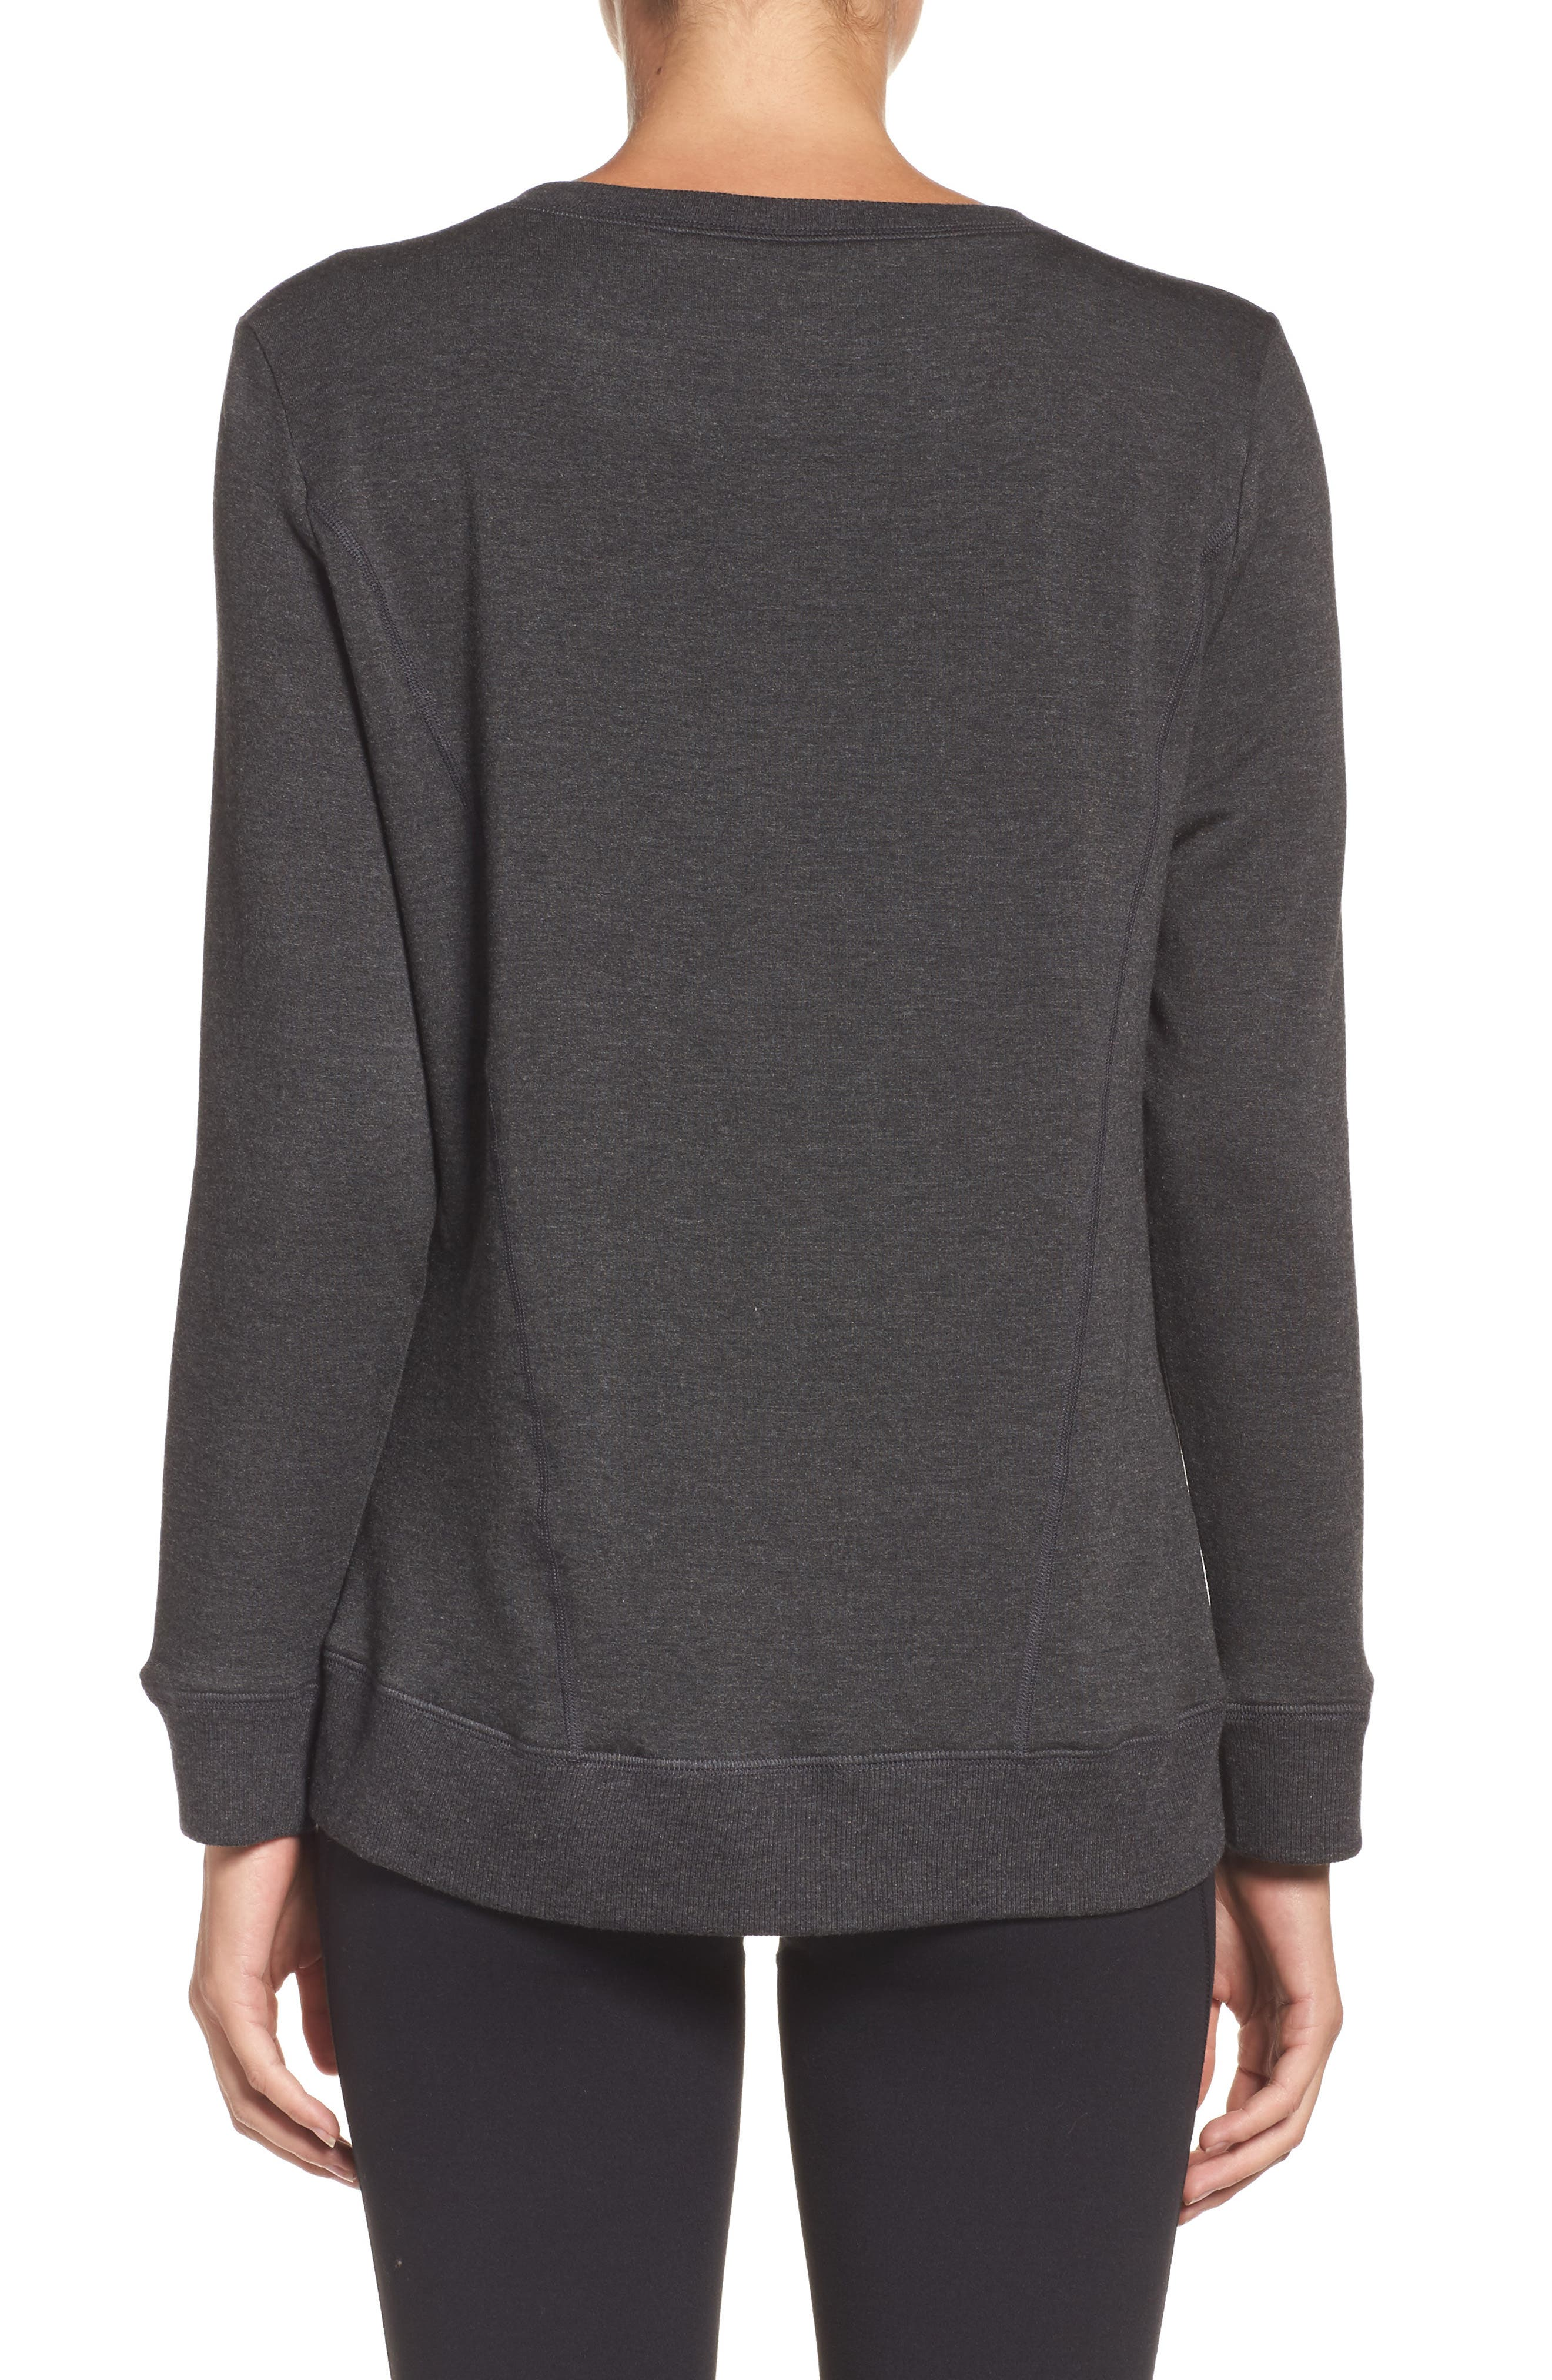 Fleece Pullover,                             Alternate thumbnail 2, color,                             Charcoal Heather Gray